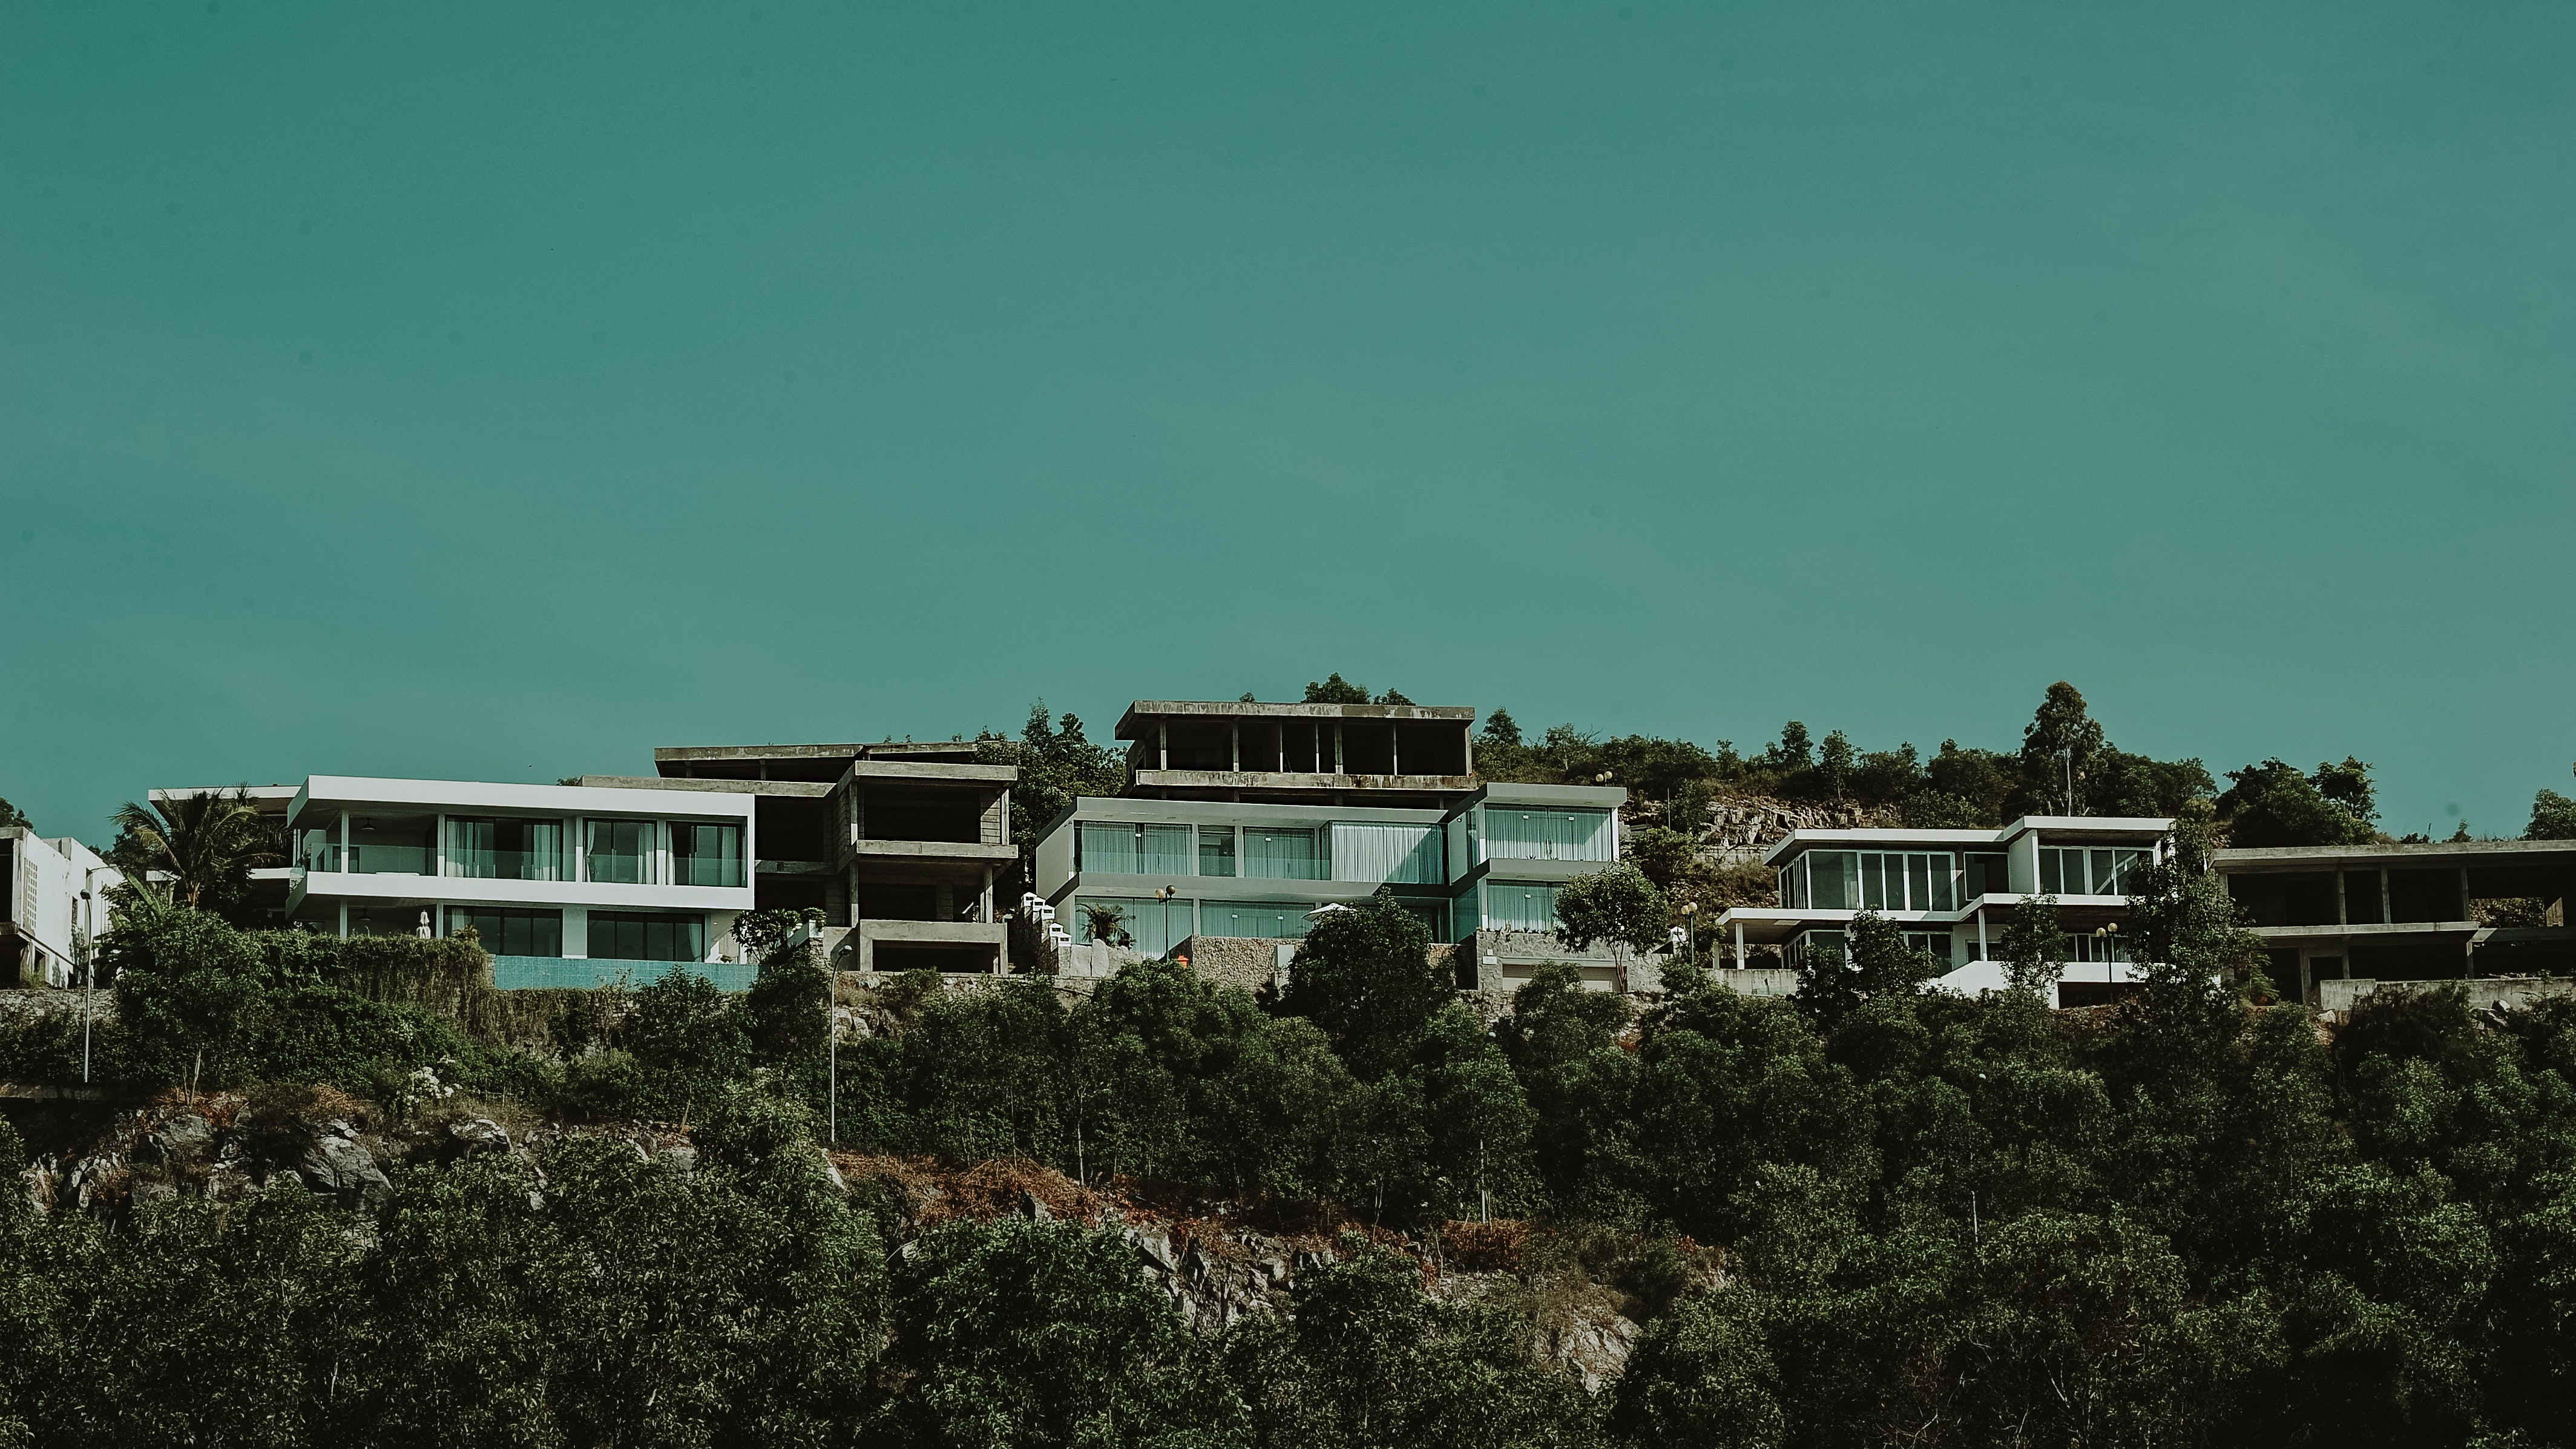 White And Gray Concrete Buildings With Green Trees Under Sky Outdoors Mountain